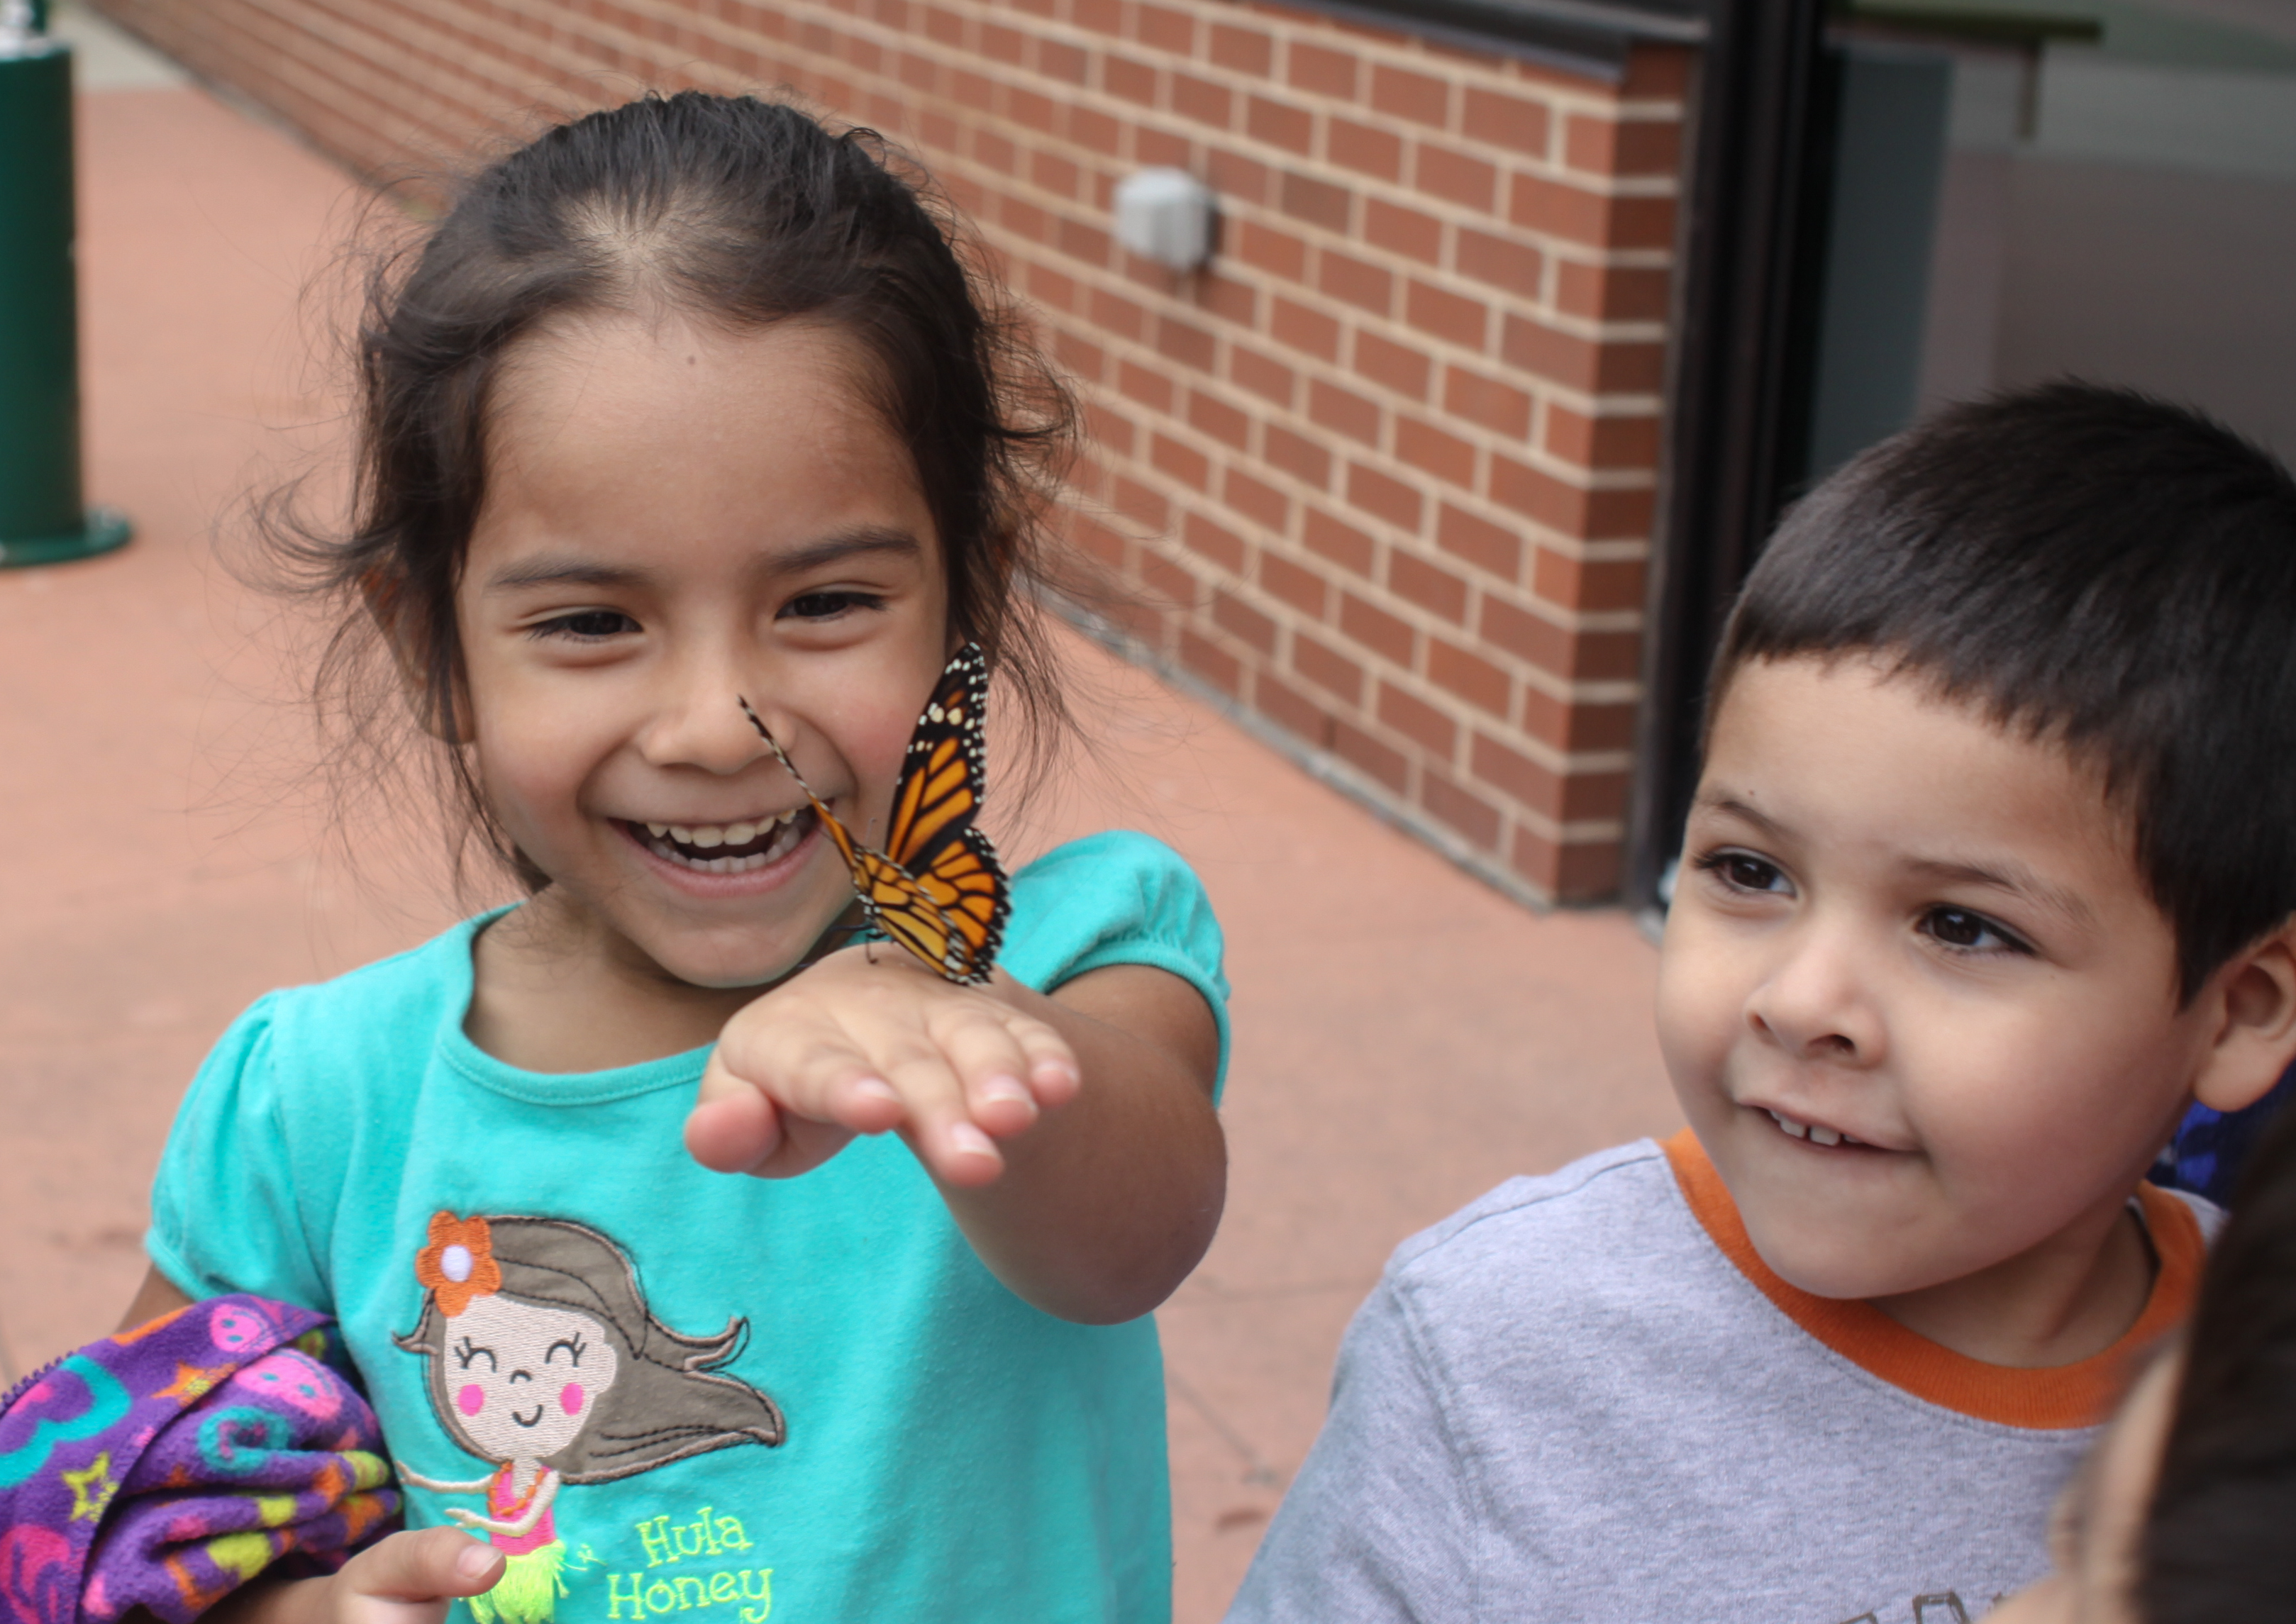 Children enjoy a Monarch Butterfly during a community event in Chicago. (Photo by Alexander Rivera for El Valor)